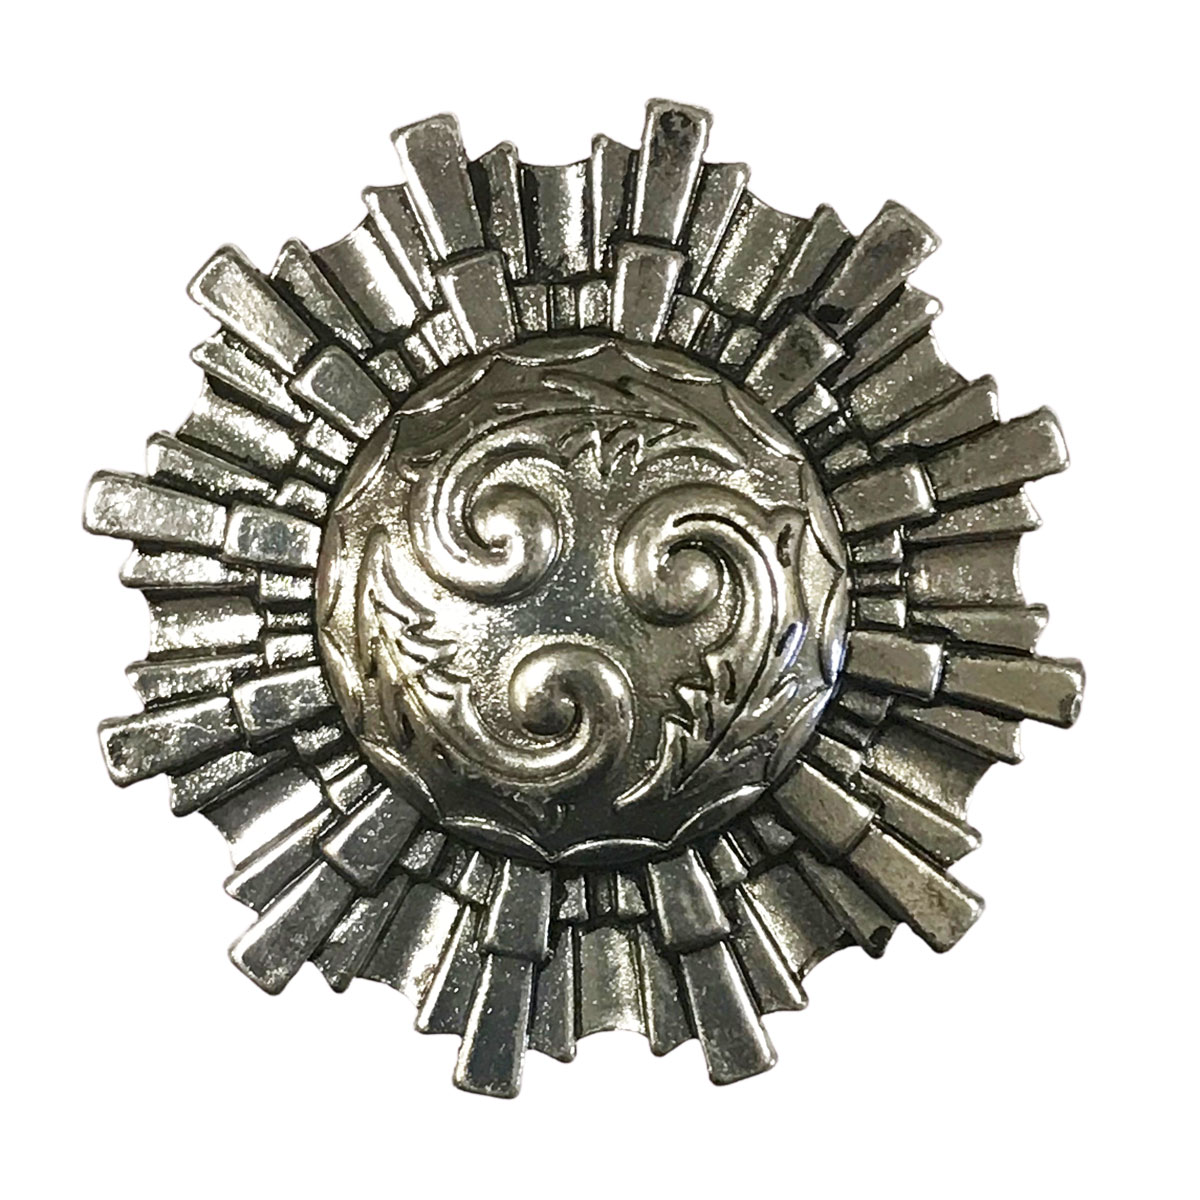 Magnetic Brooches - Artful Design - Plain Back - 601 Aztec Sun Magnetic Brooch